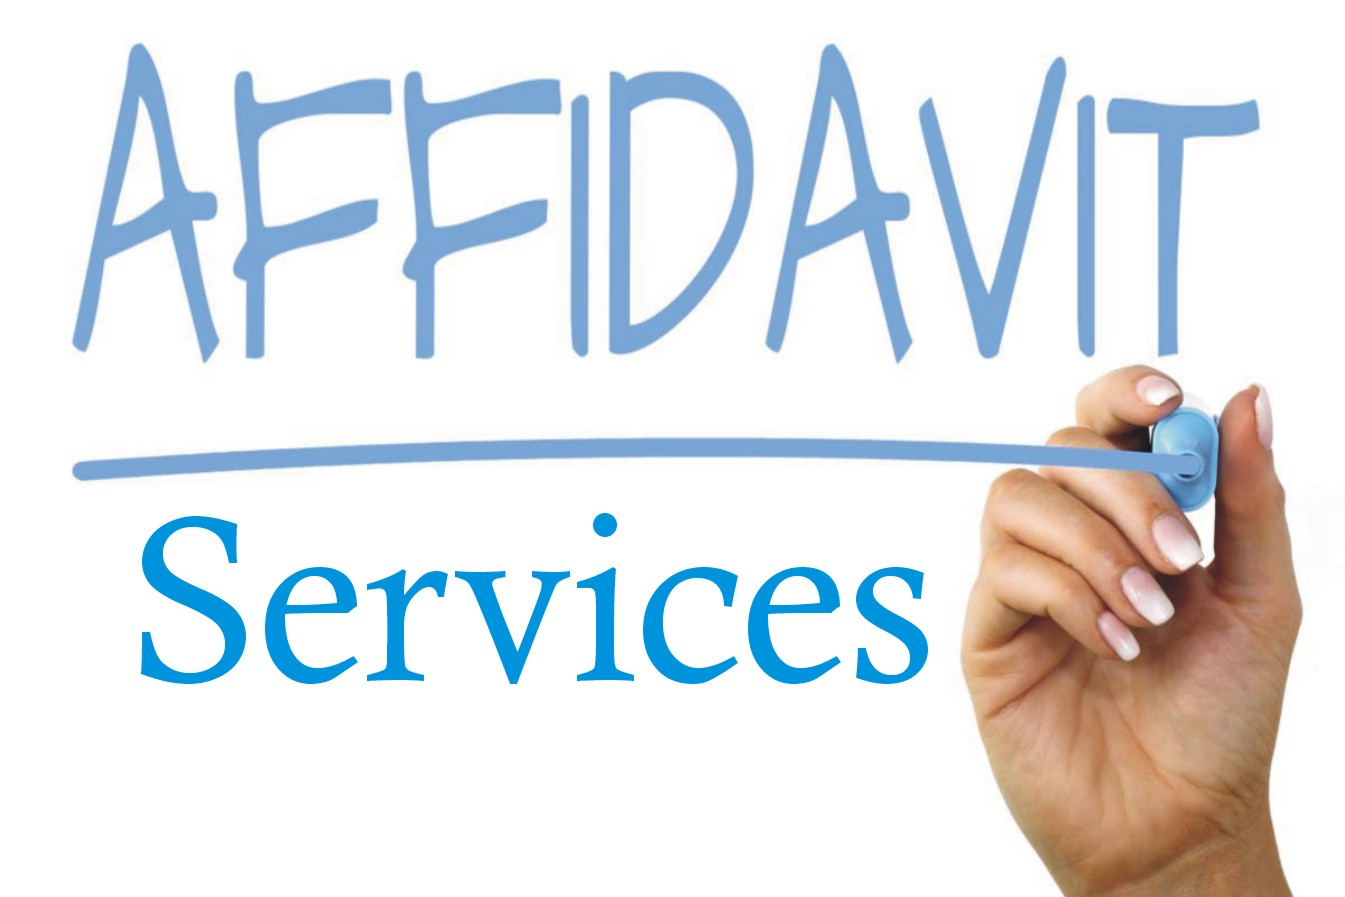 Affidavit Services in Toronto